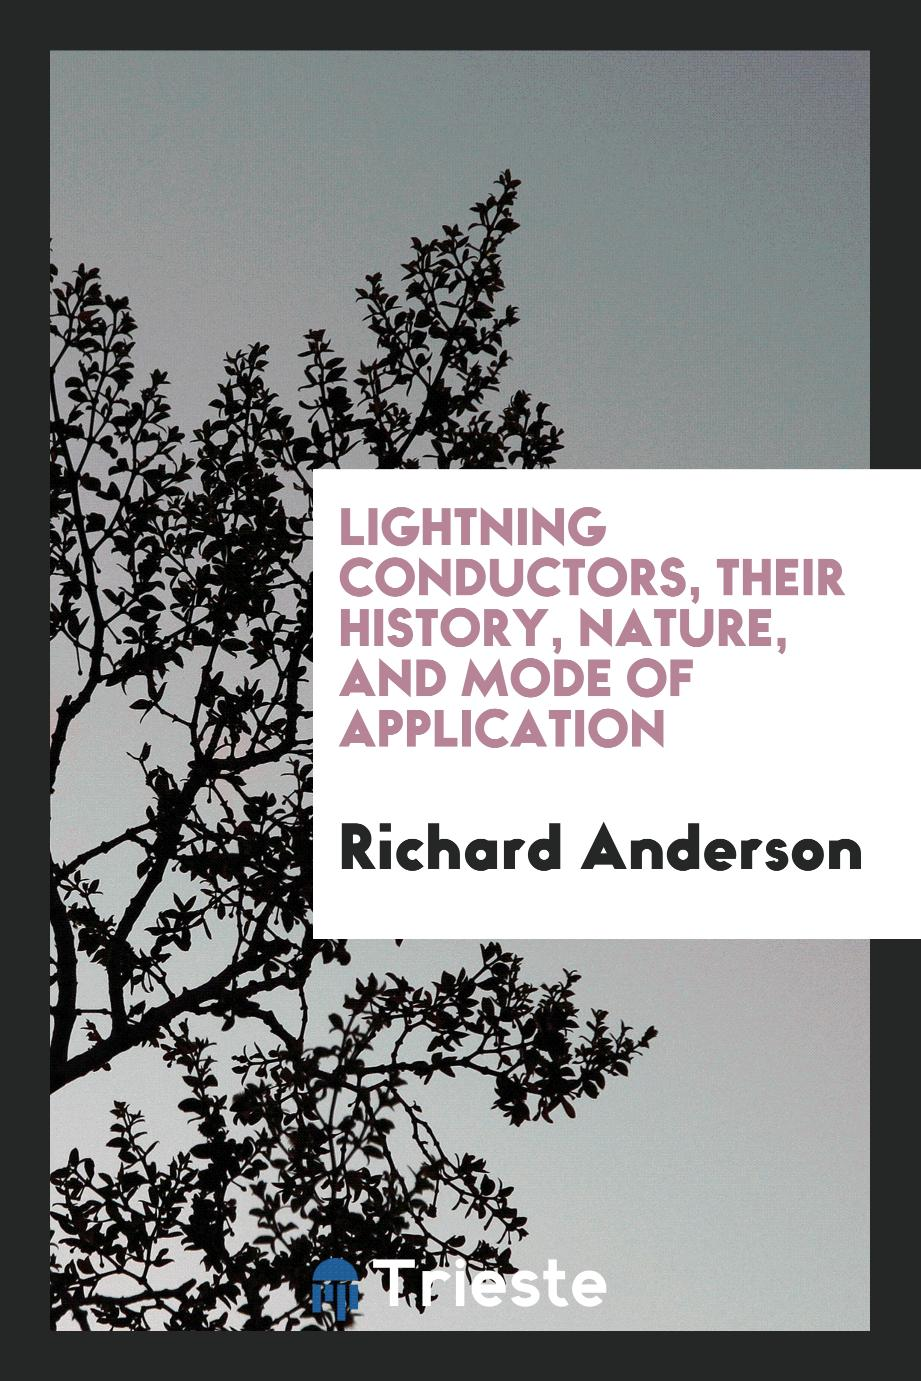 Lightning conductors, their history, nature, and mode of application